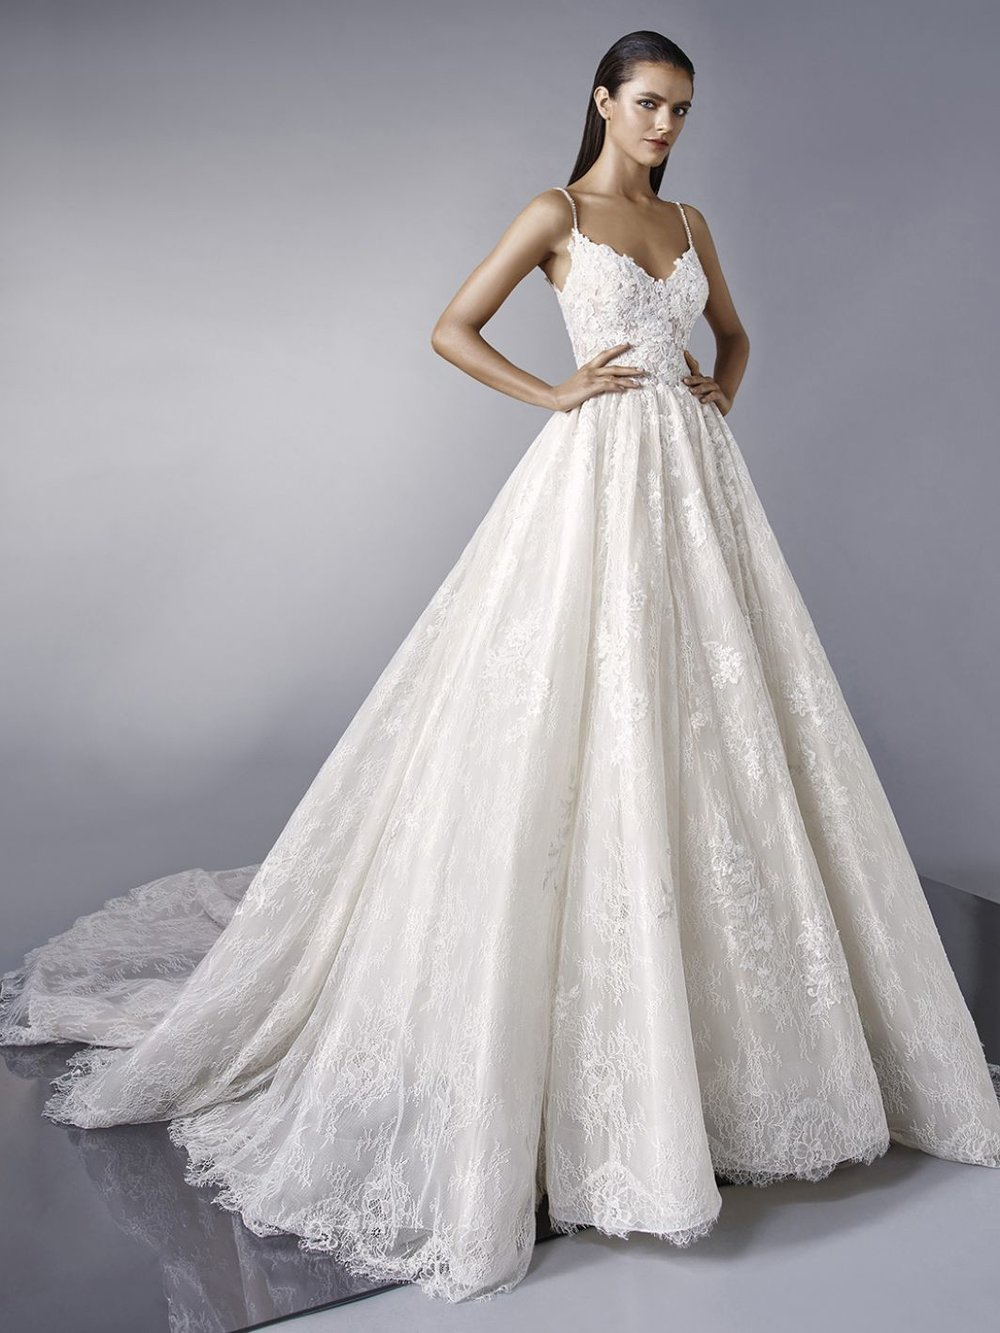 Our love for the ball gown wedding dress is at an all-time high. Our collection of princess ball gown wedding dresses gives the classic ballgown a modern update. If you're looking for a long sleeve ball gown wedding dress you will love our selection of princess wedding dresses with sleeves.